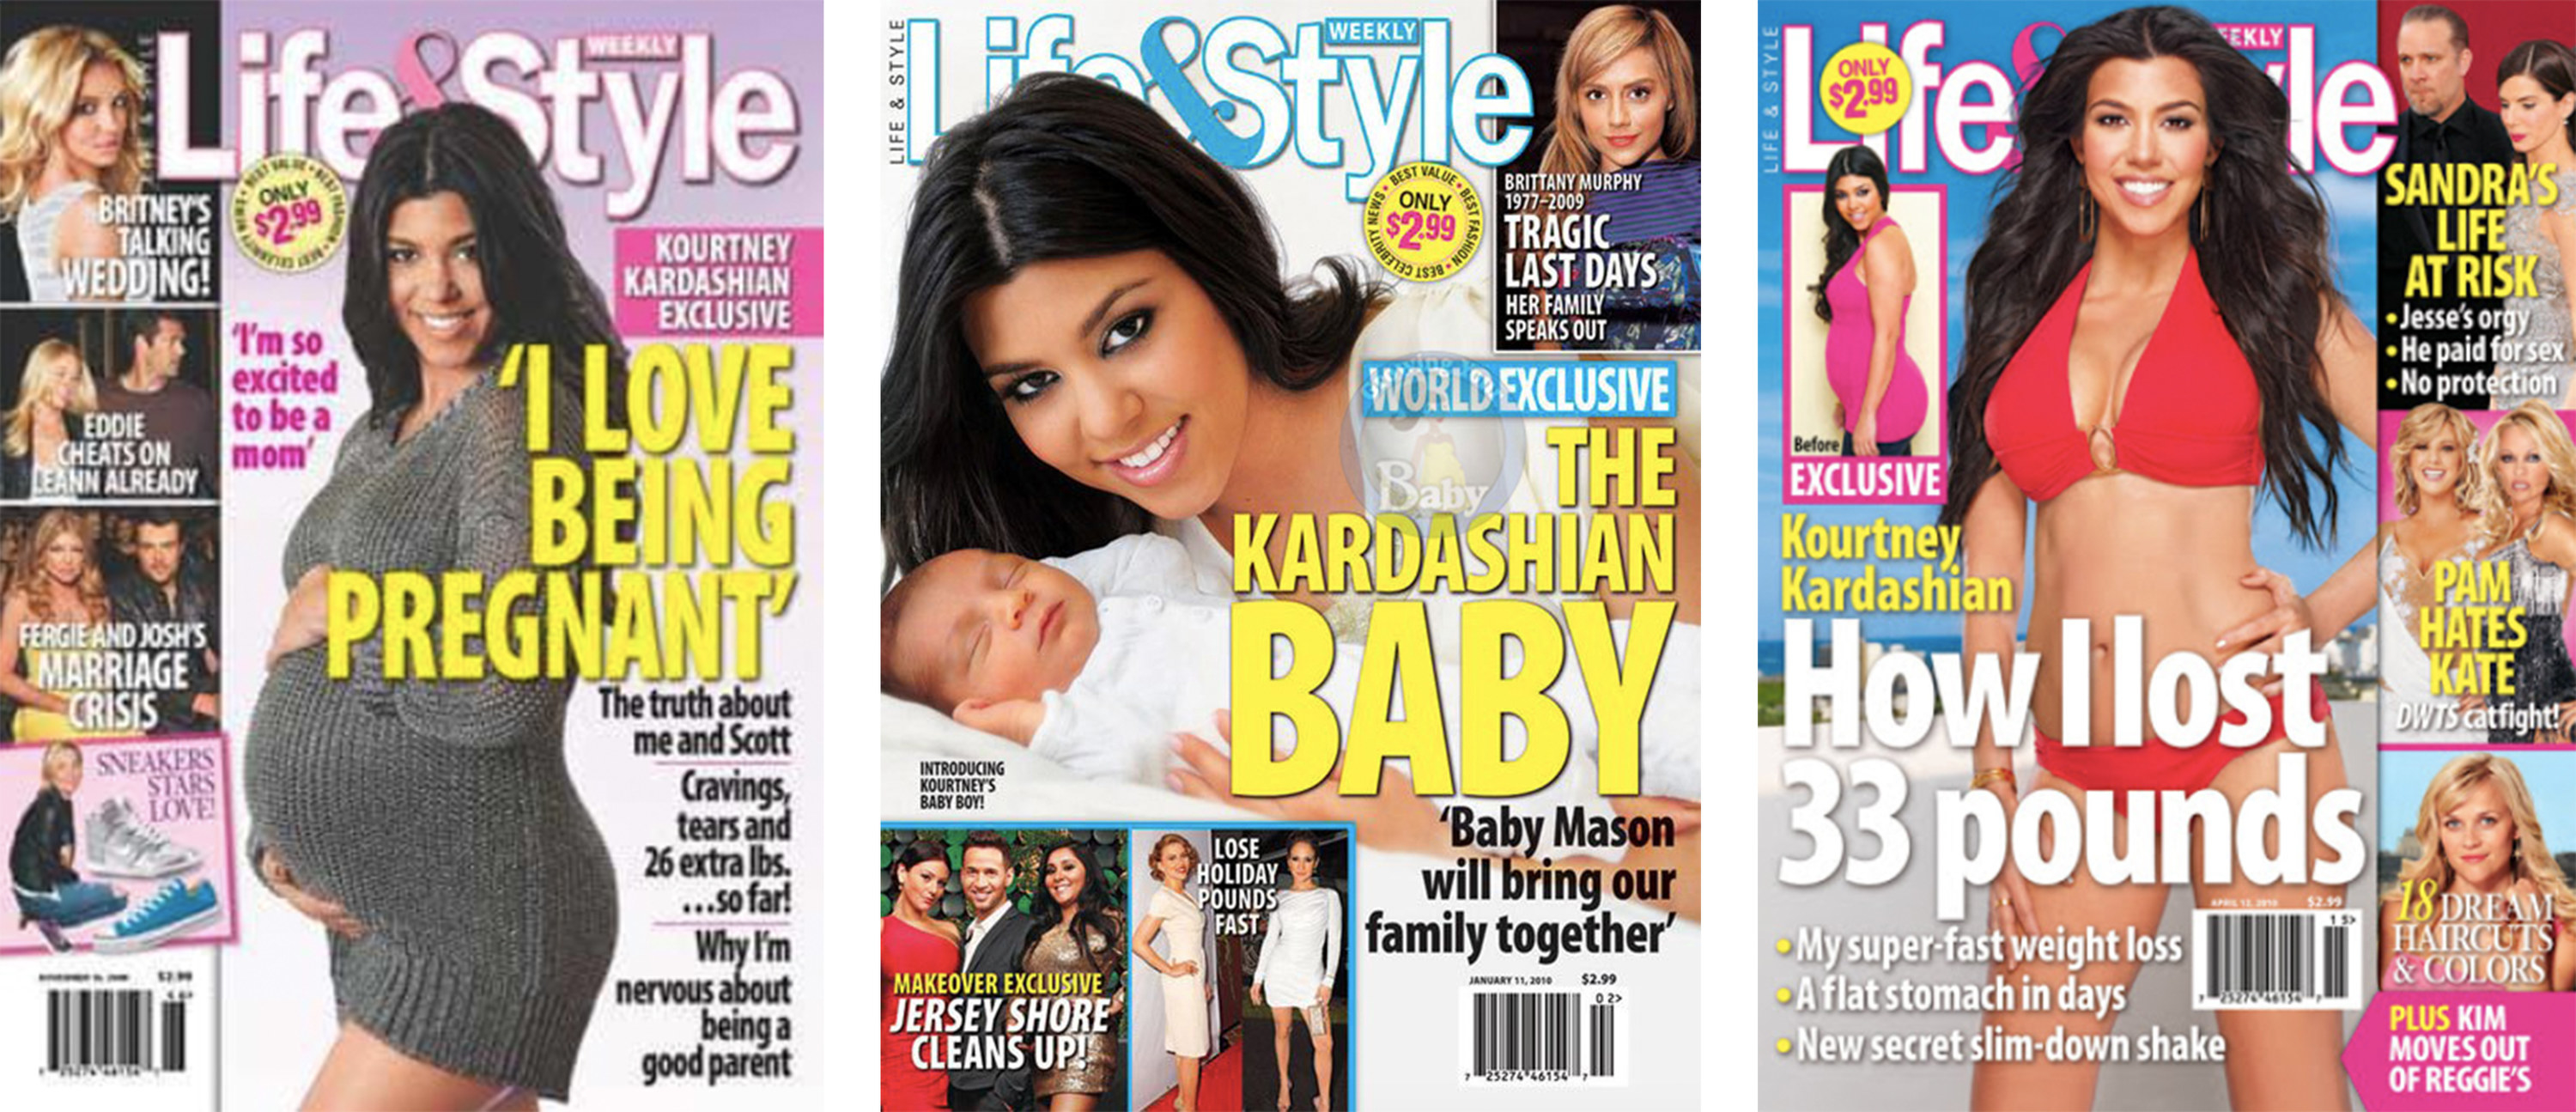 Life & Style magazine covers following Kourtney's pregnancy, new baby, and post-pregnancy body